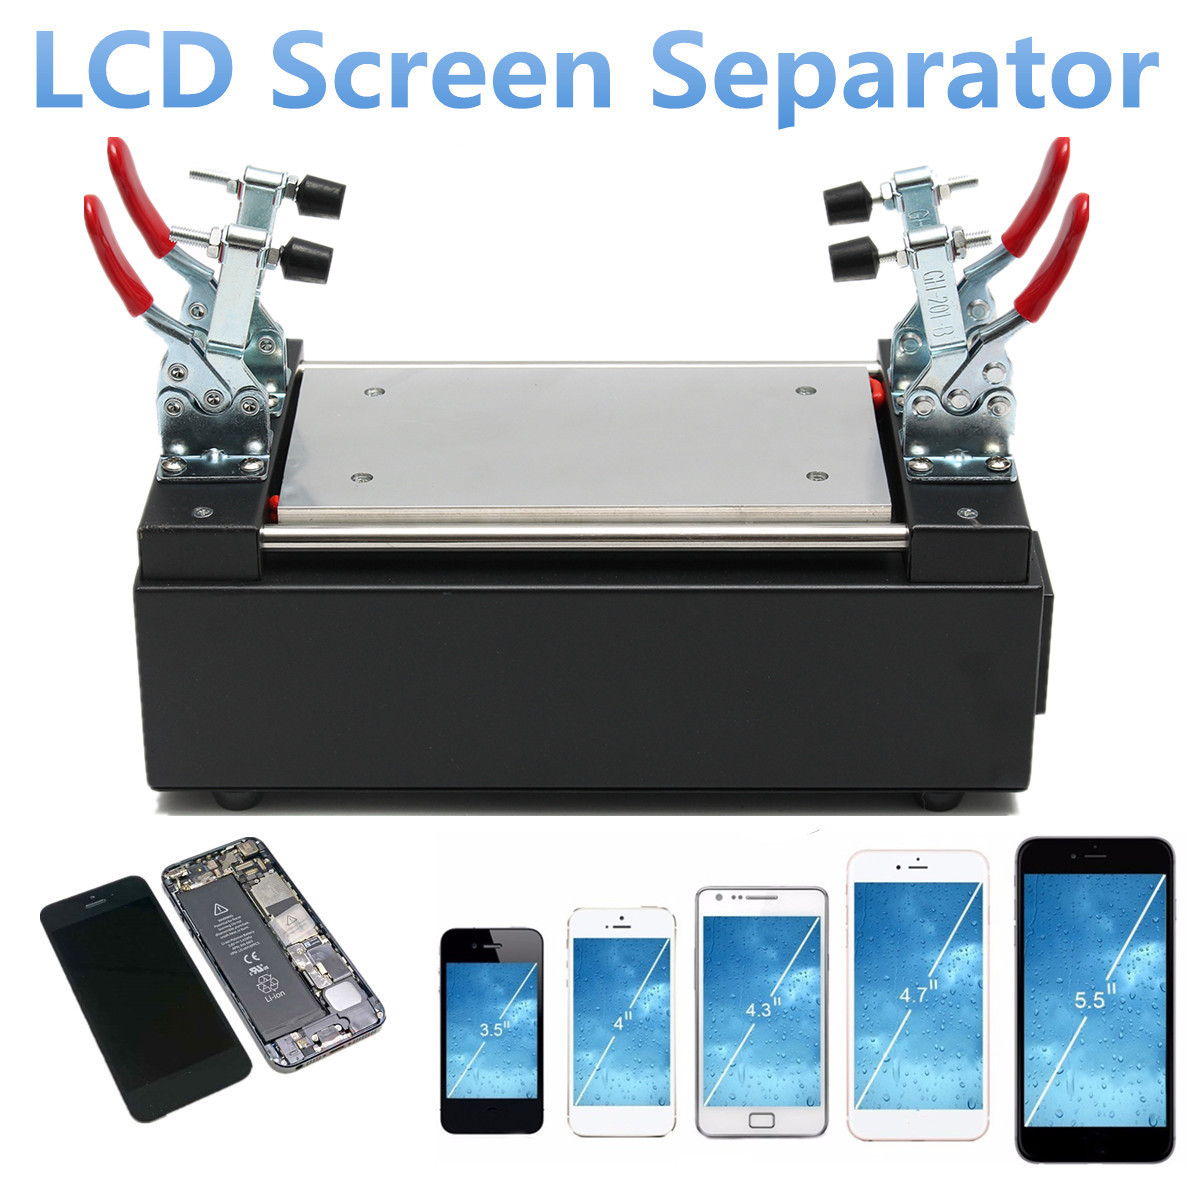 7 Built-in Vacuum Pump Phone LCD Outer Glass Screen Separator Repair Machine With Adjustable Fixed Tools Anti Static US/EU Plug цена